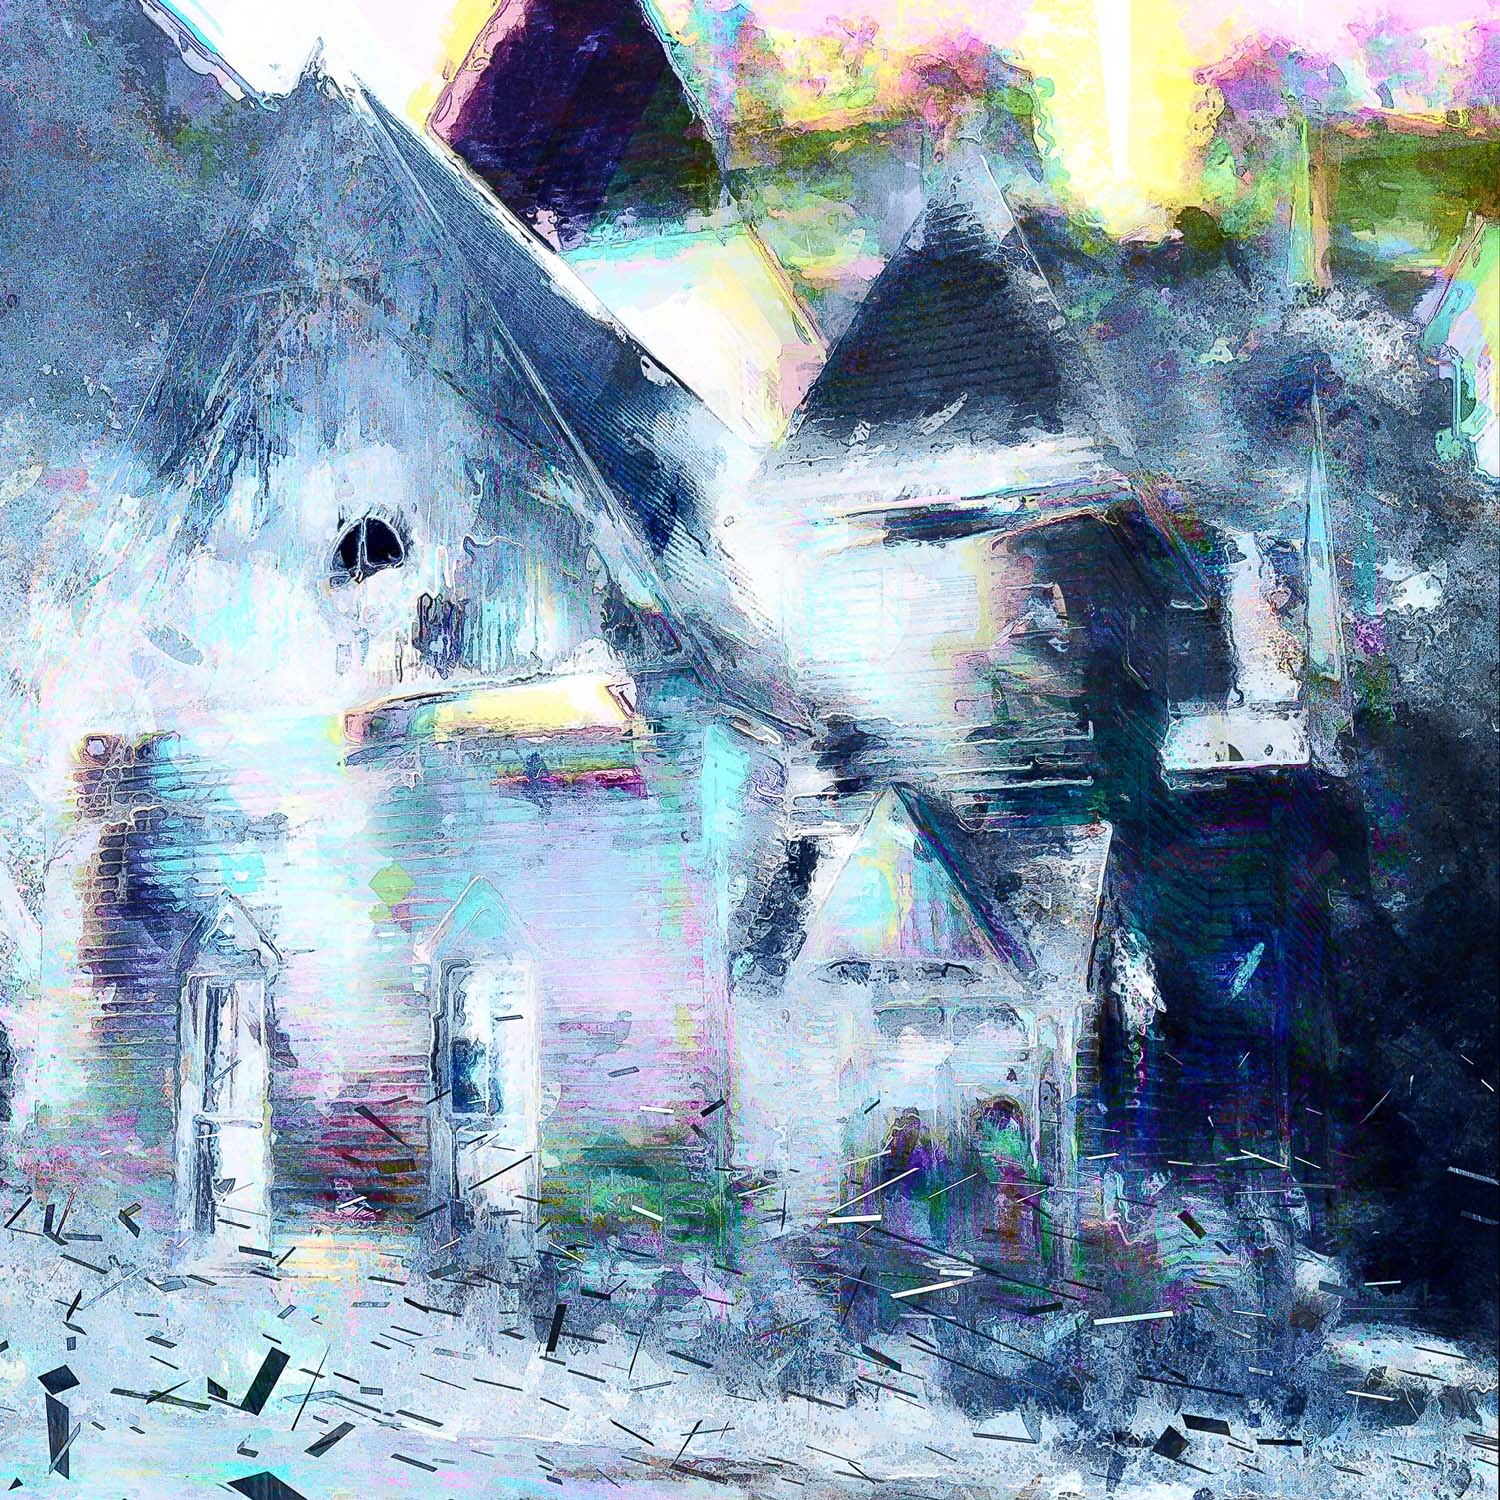 surviving-storms-denise-smith.jpg